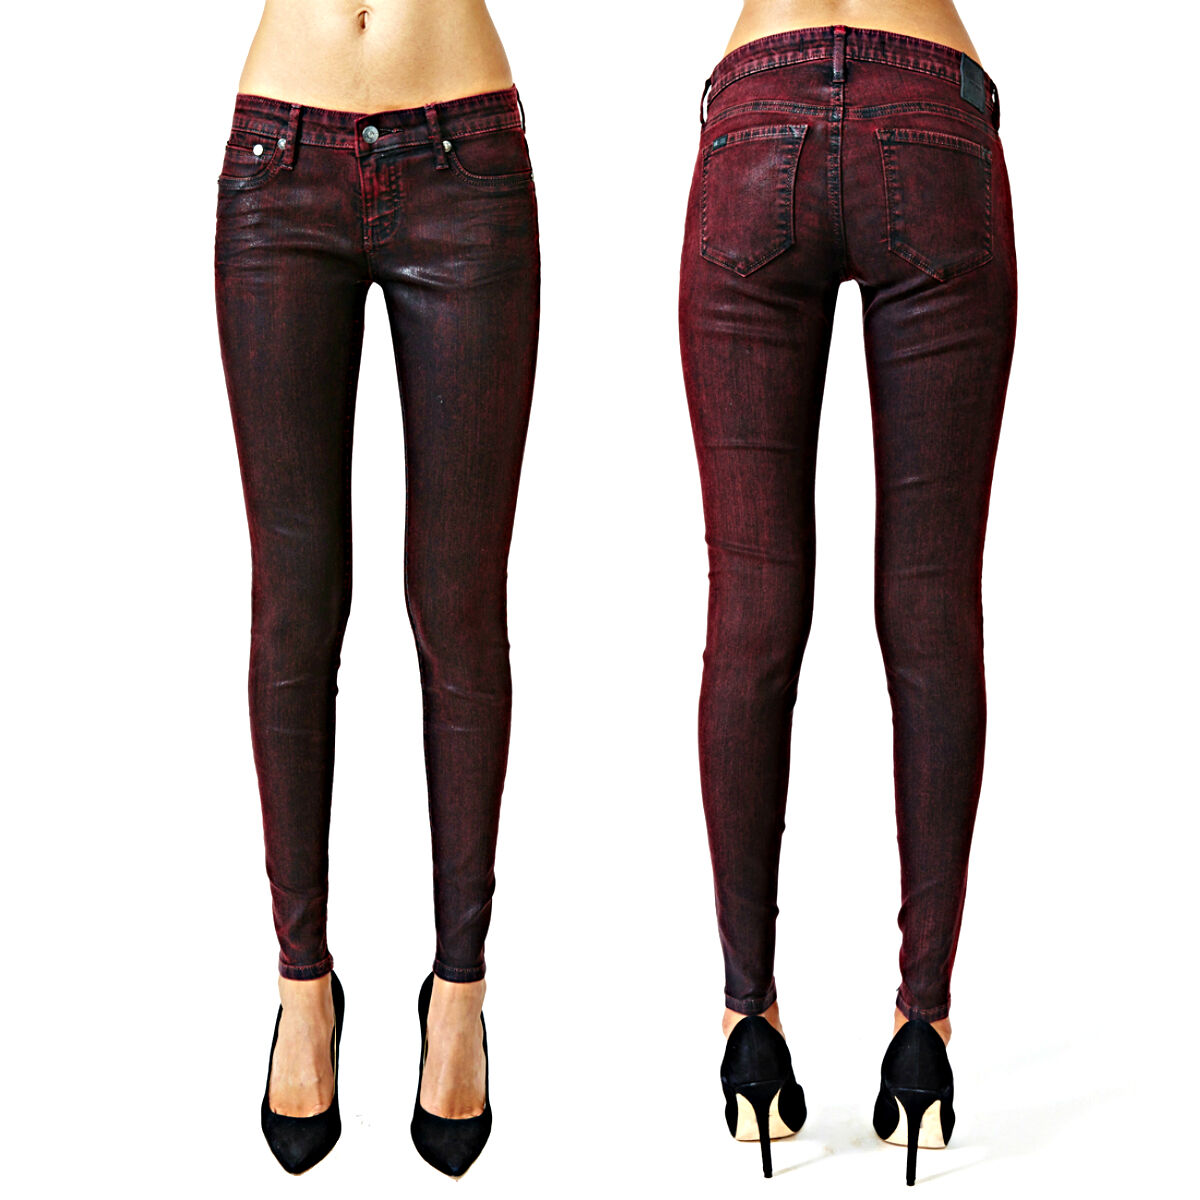 KILL CITY LIP SERVICE WAX PU COATED LEATHER LOOK LEGGINGS SKINNY PANTS JEANS EMO Clothing, Shoes & Accessories